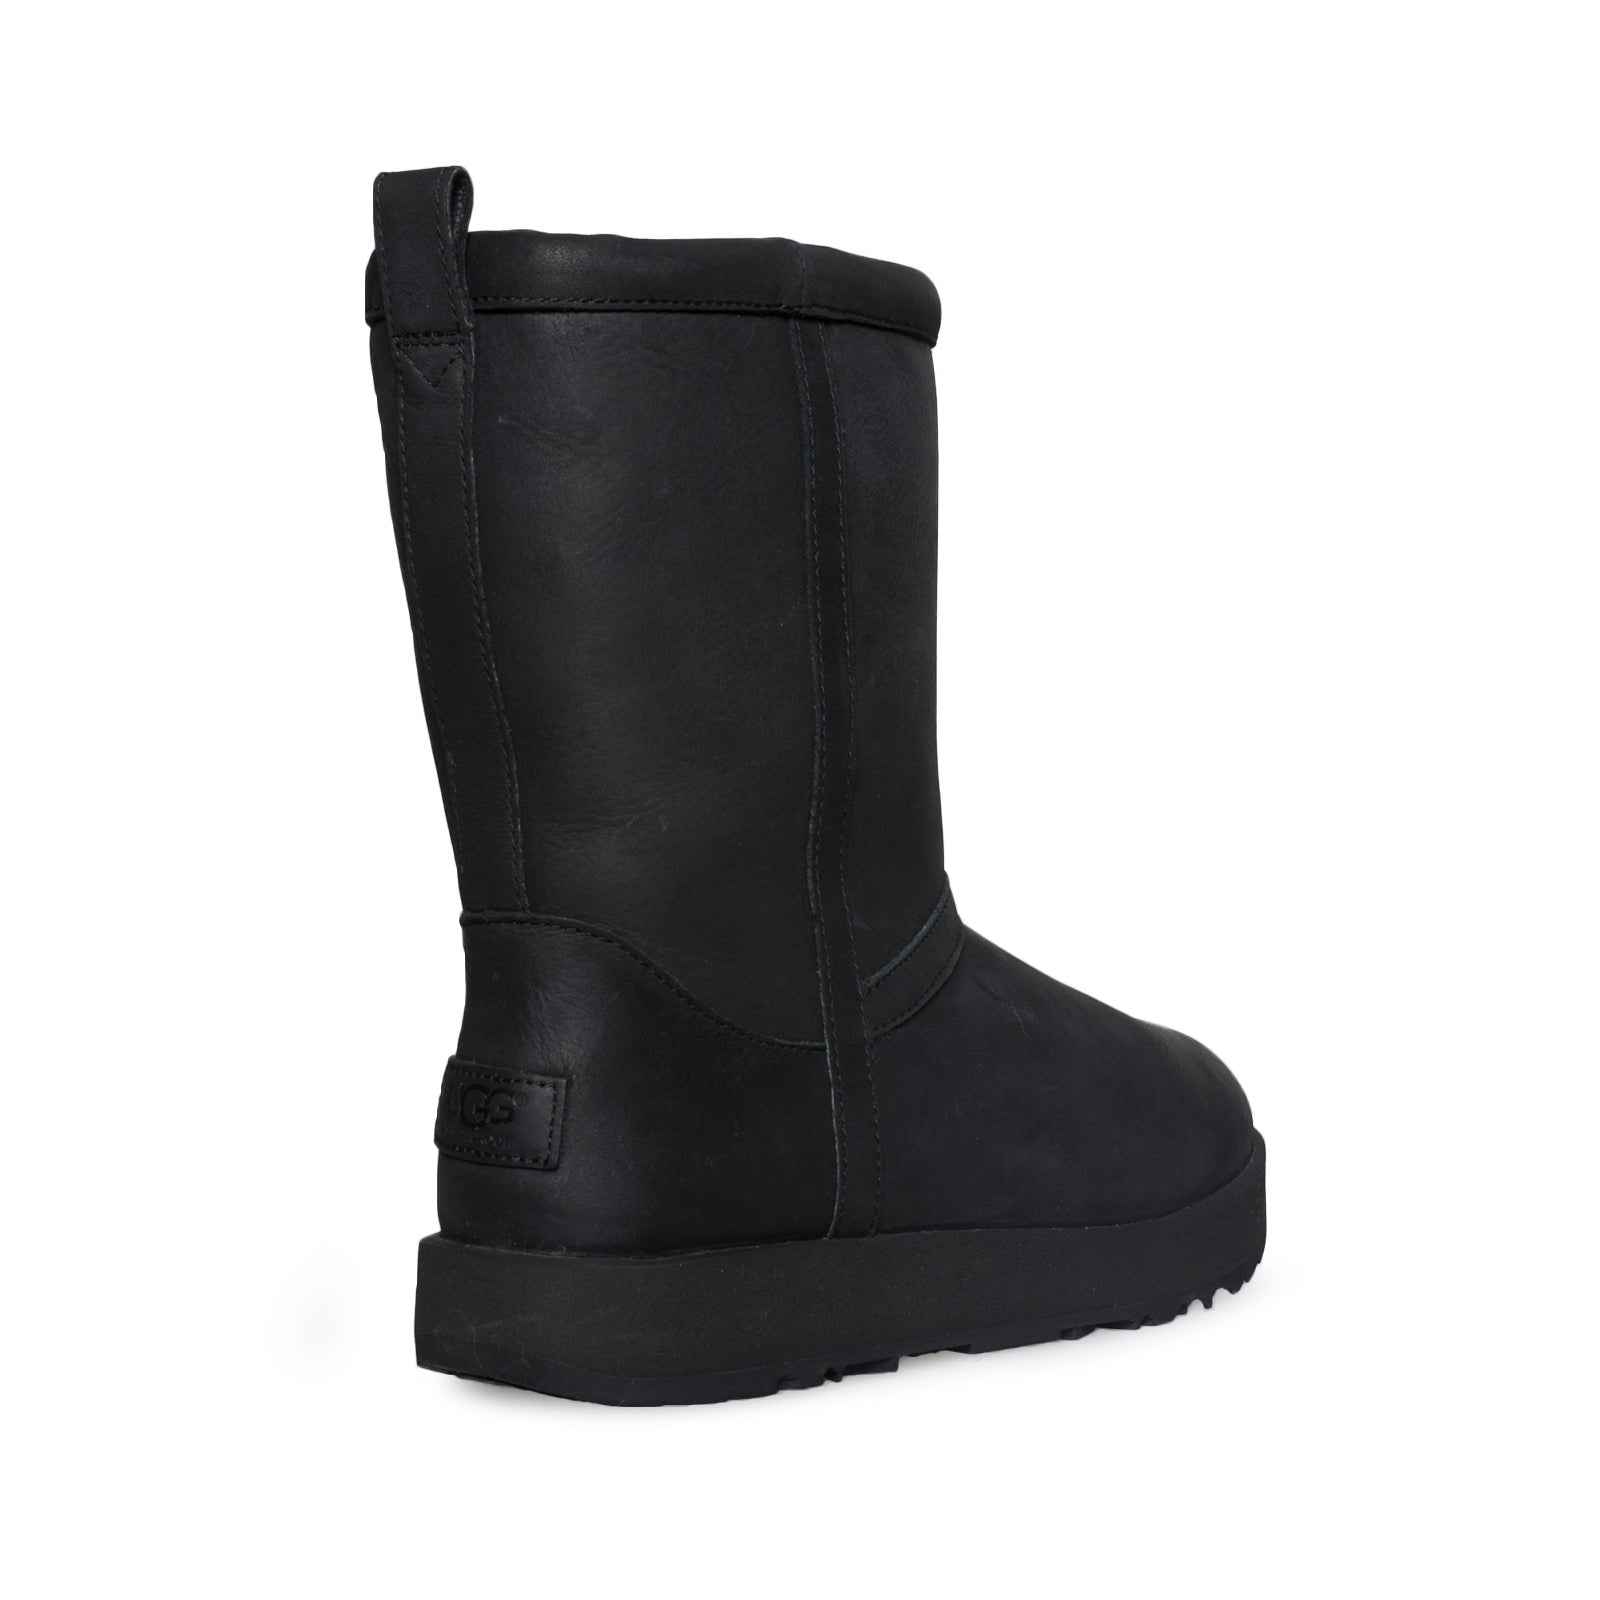 84dac002092 UGG Classic Short Leather Waterproof Black Boots - Women's